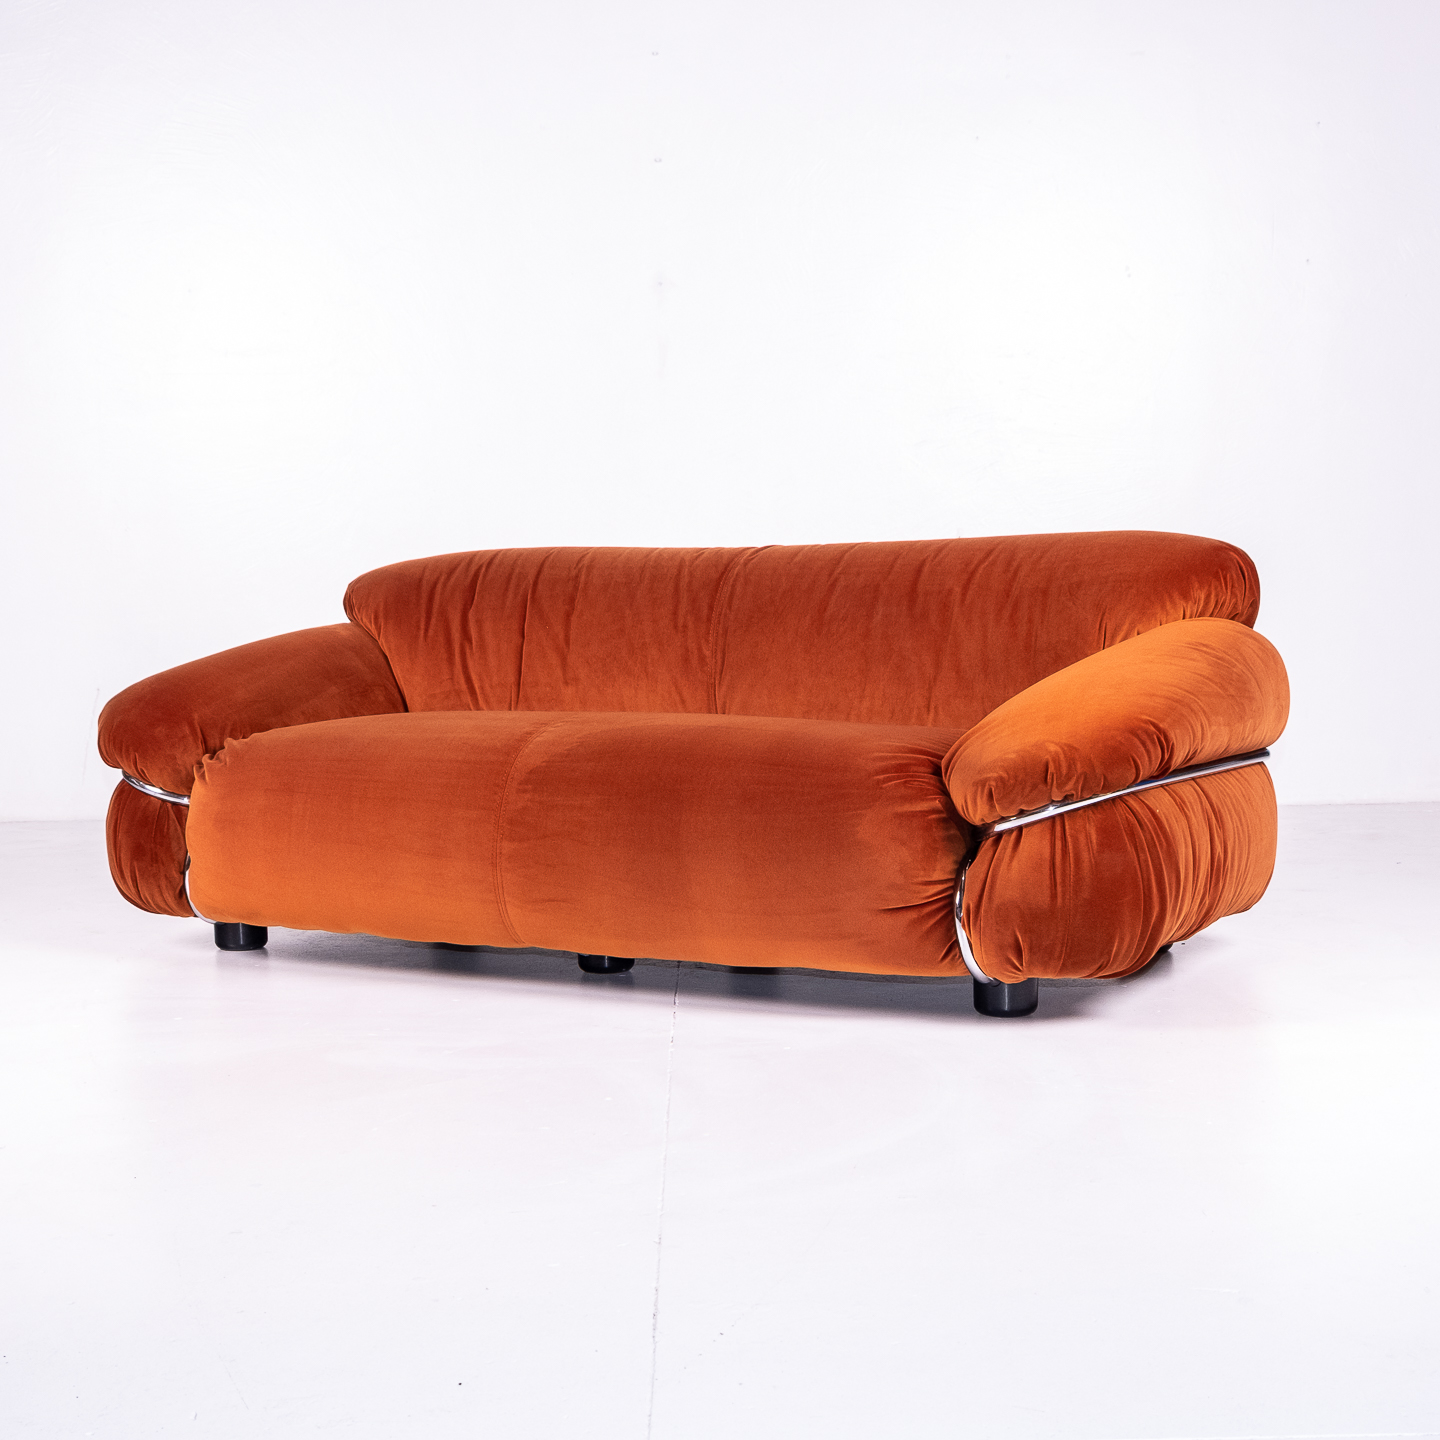 Model 595 Sesann Sofa By Gianfranco Frattini For Cassina, 1970s, Italy 192